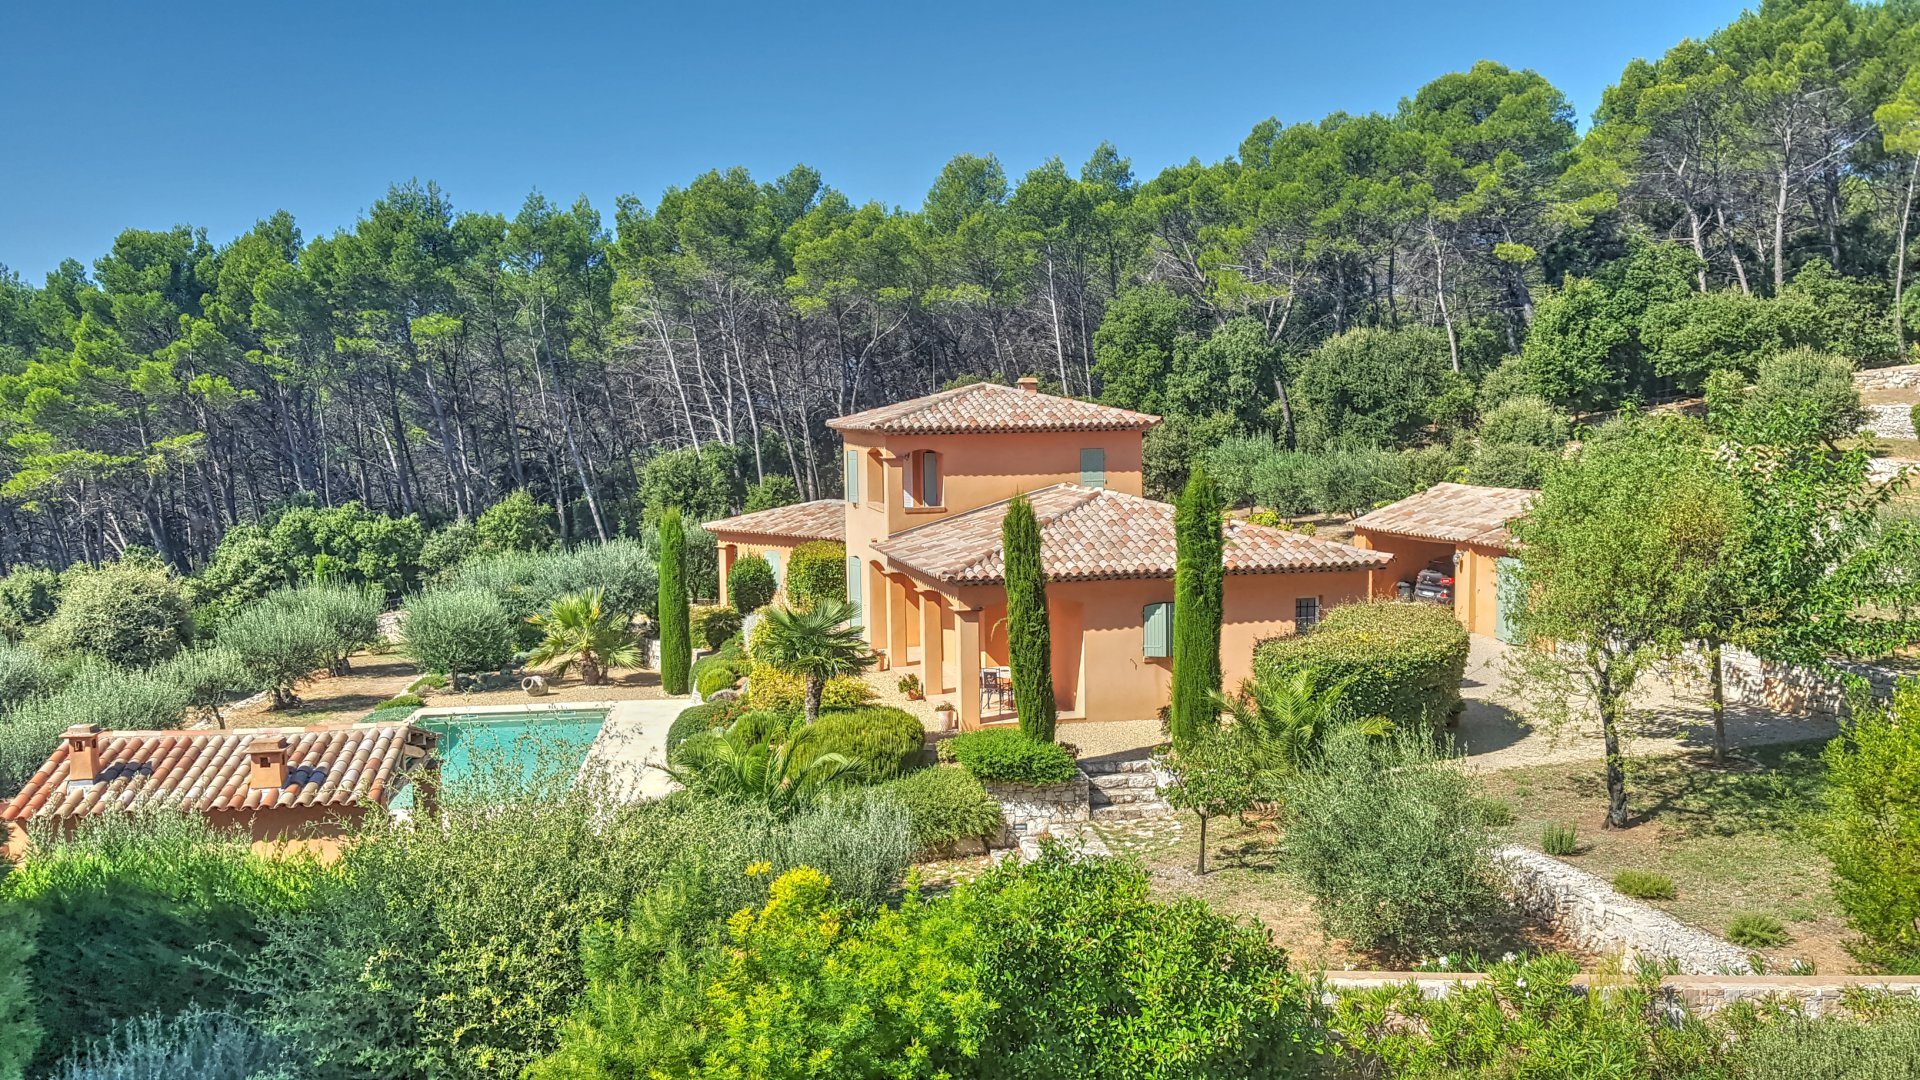 Exceptional quality property with panoramic view over Lorgues